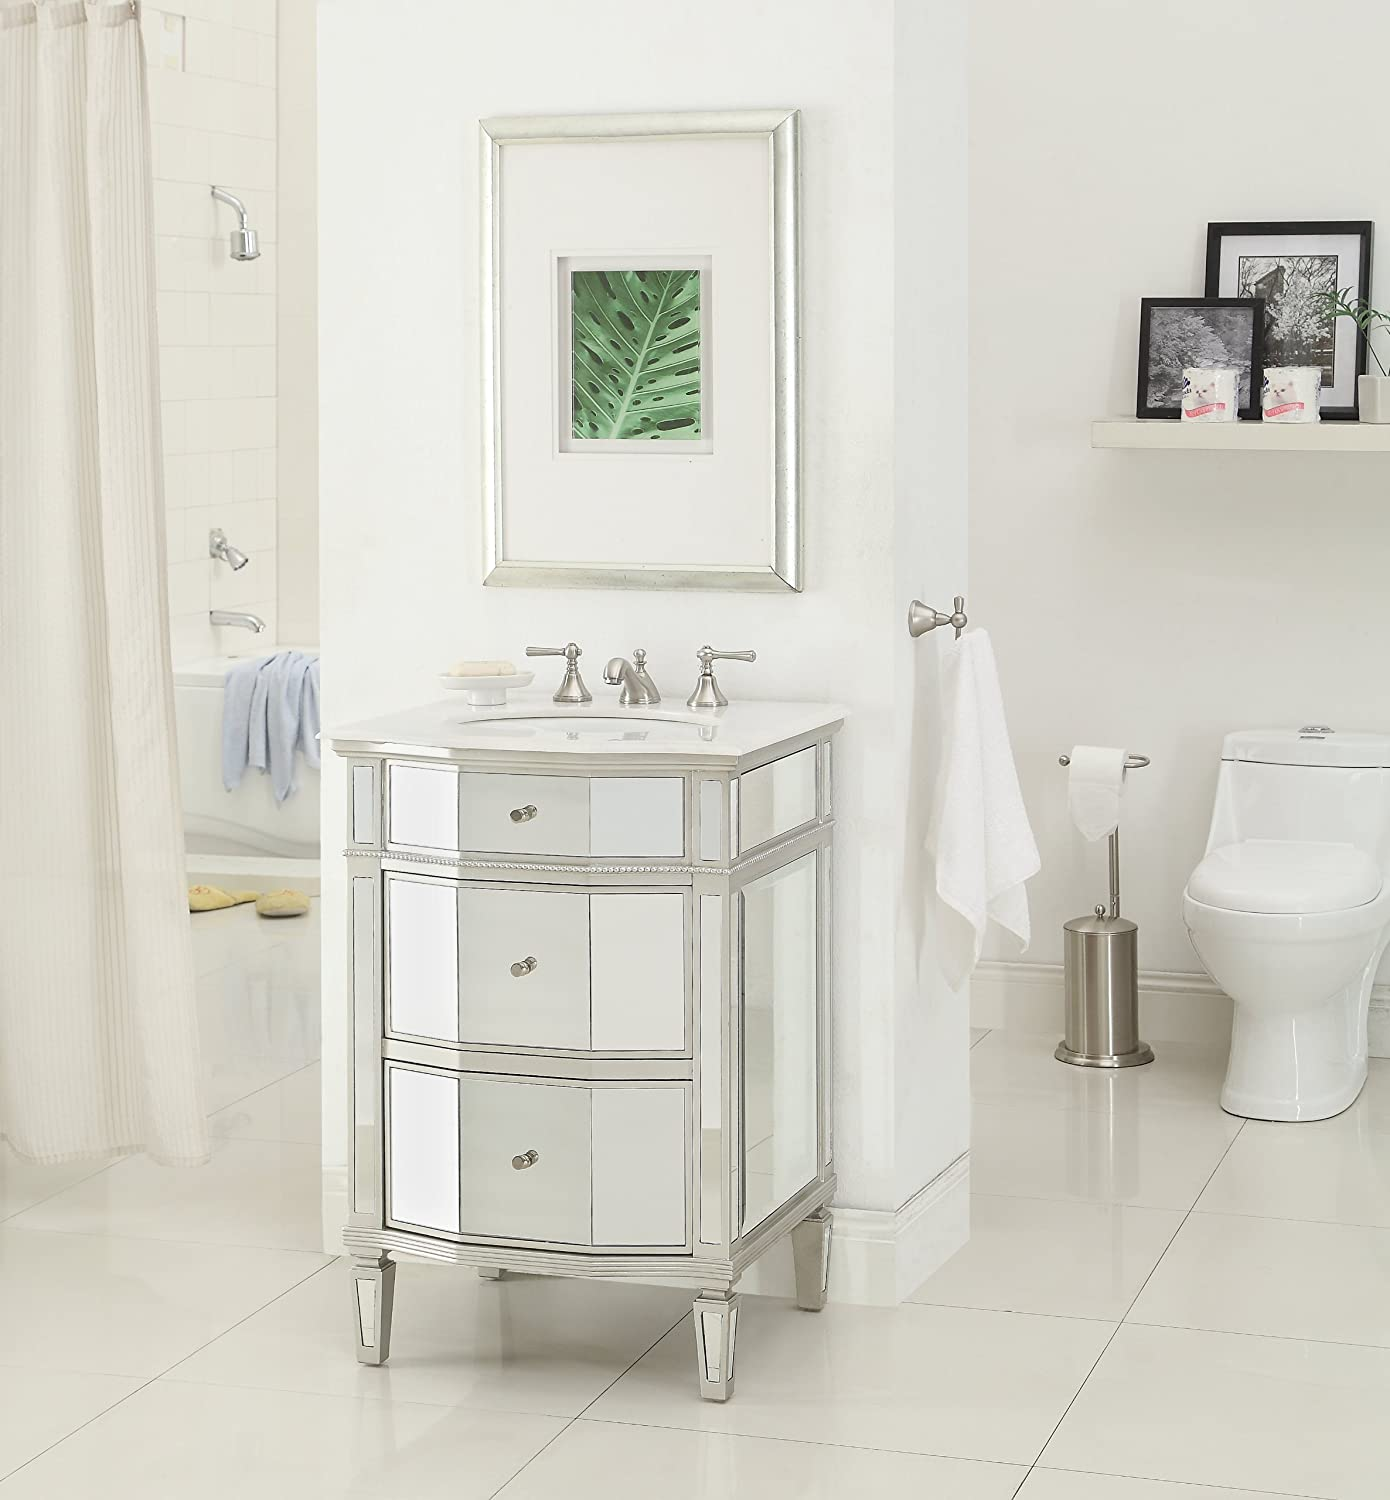 24 All Mirror Petite Bathroom Sink Vanity